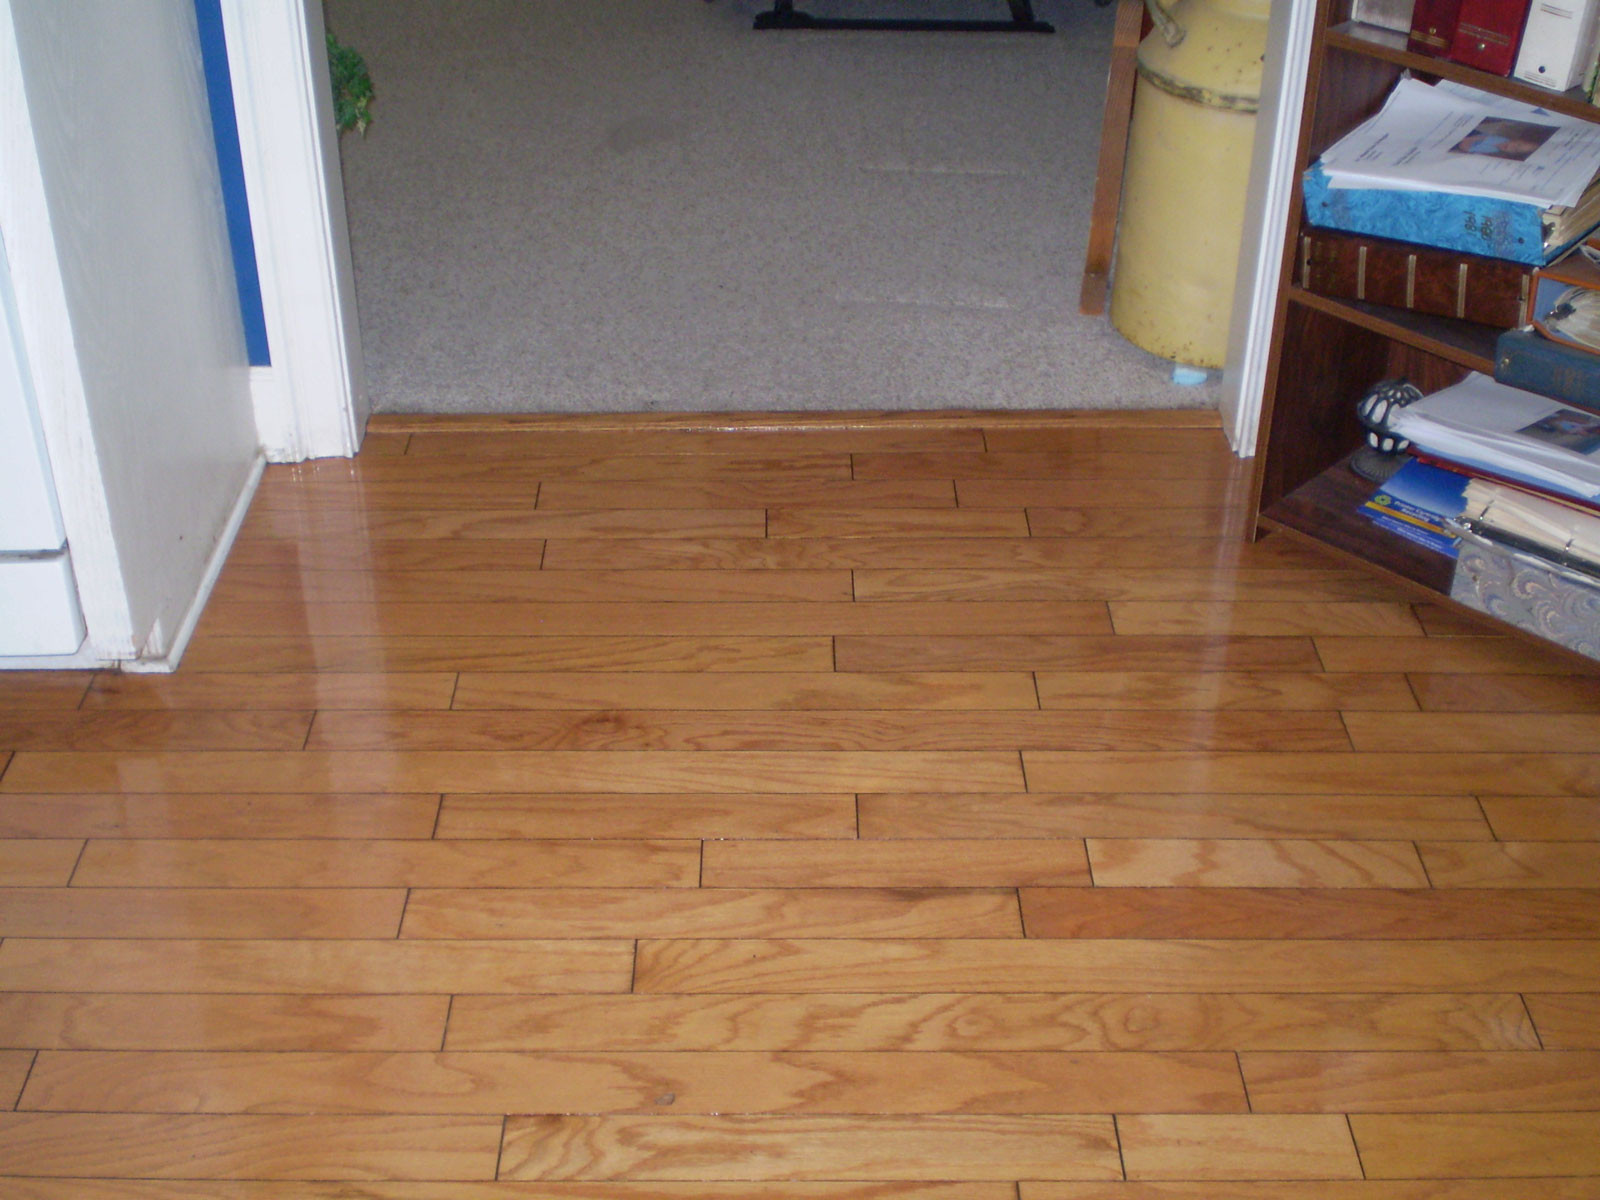 hardwood floor refinishing per square foot of how to refinish wood floors step by step rochester hardwood floors inside how to refinish wood floors step by step will refinishingod floors pet stains old without sanding